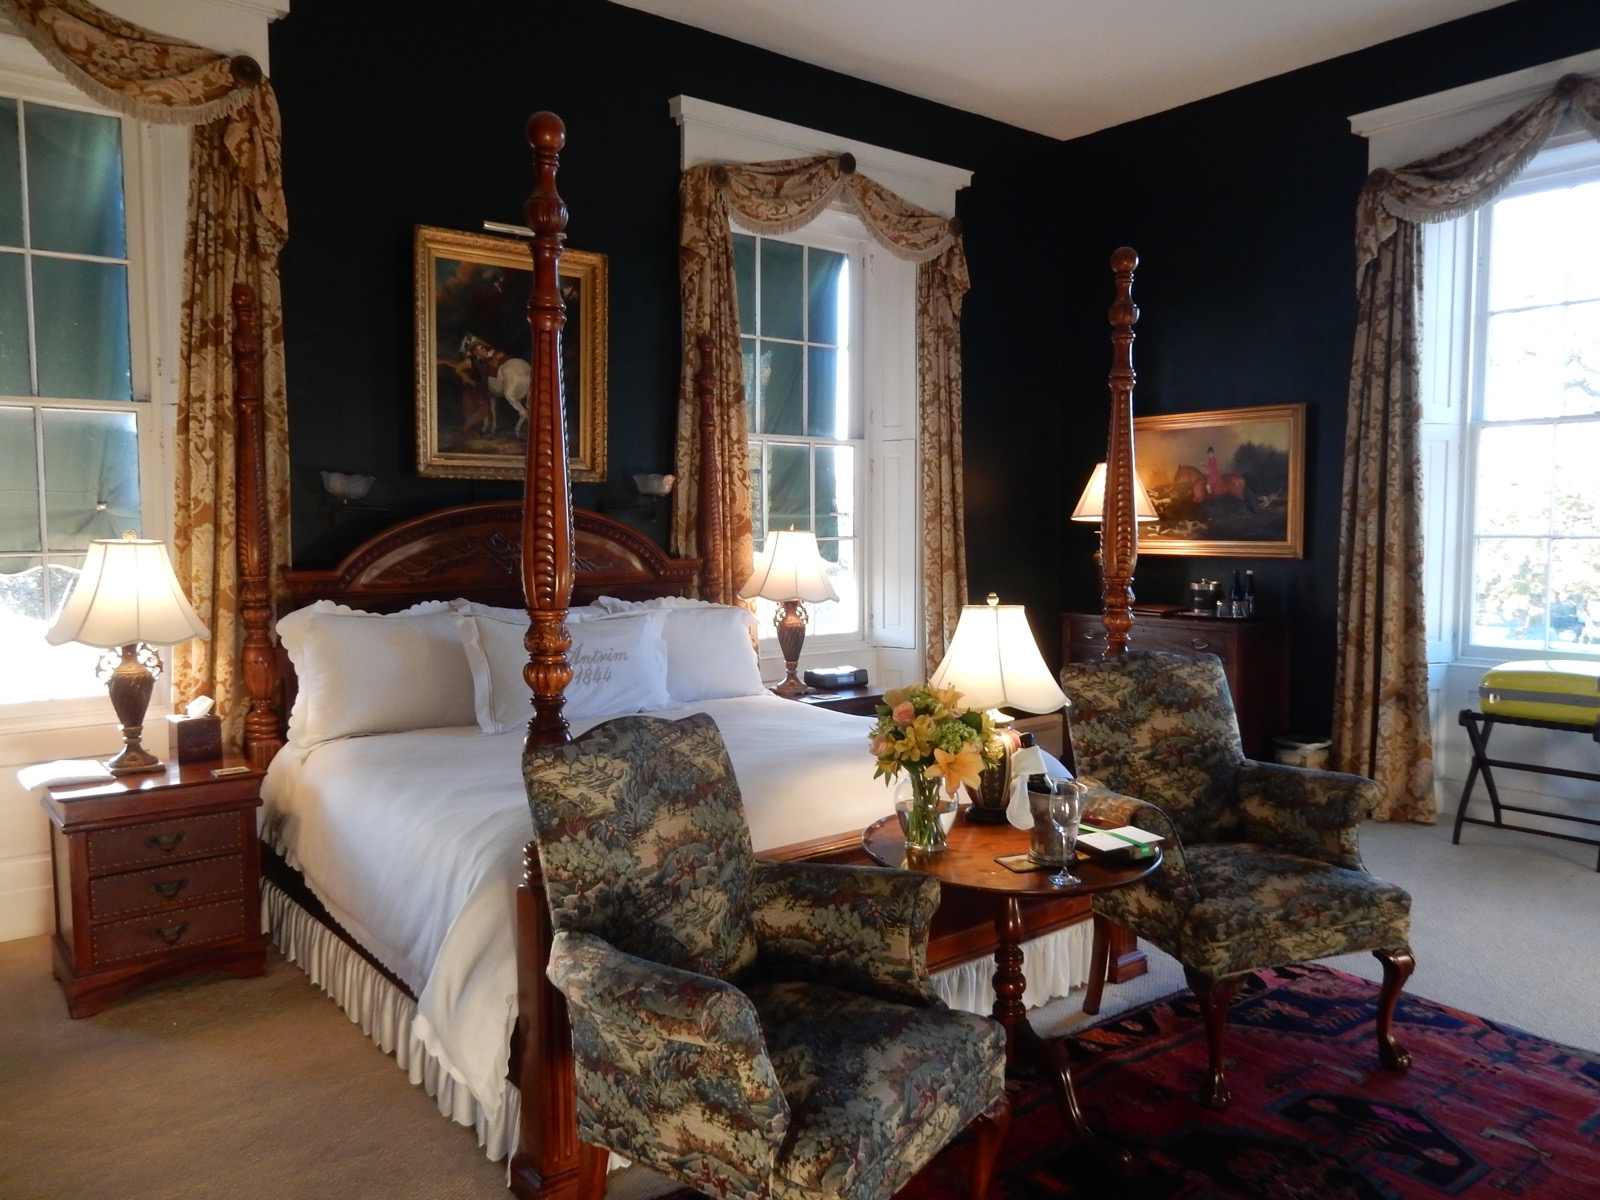 Guest Room, Antrim 1844, Taneytown MD